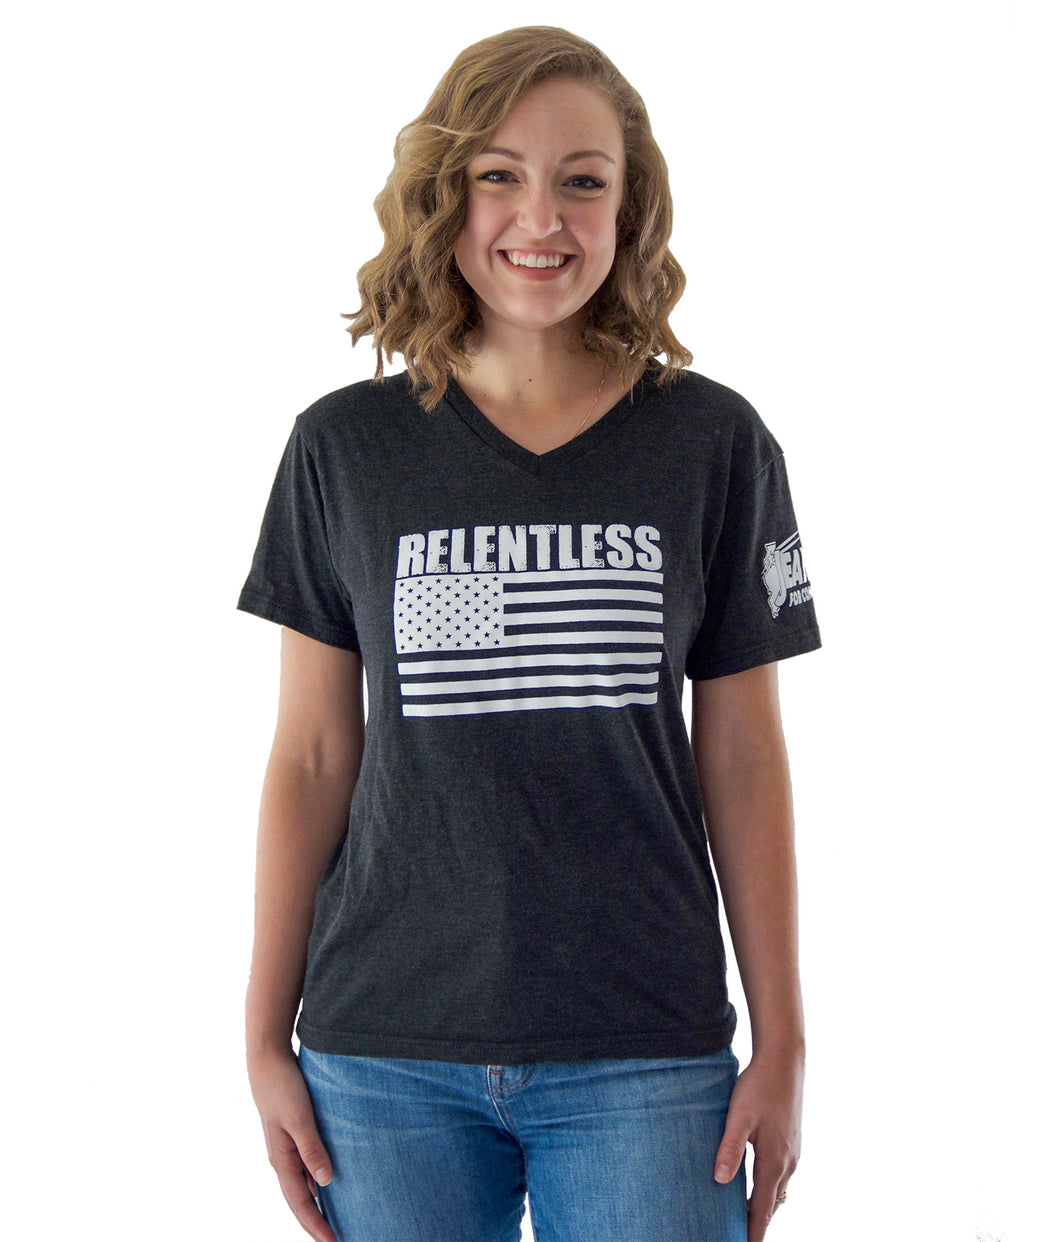 Women's Relentless Shirt - Dark Gray